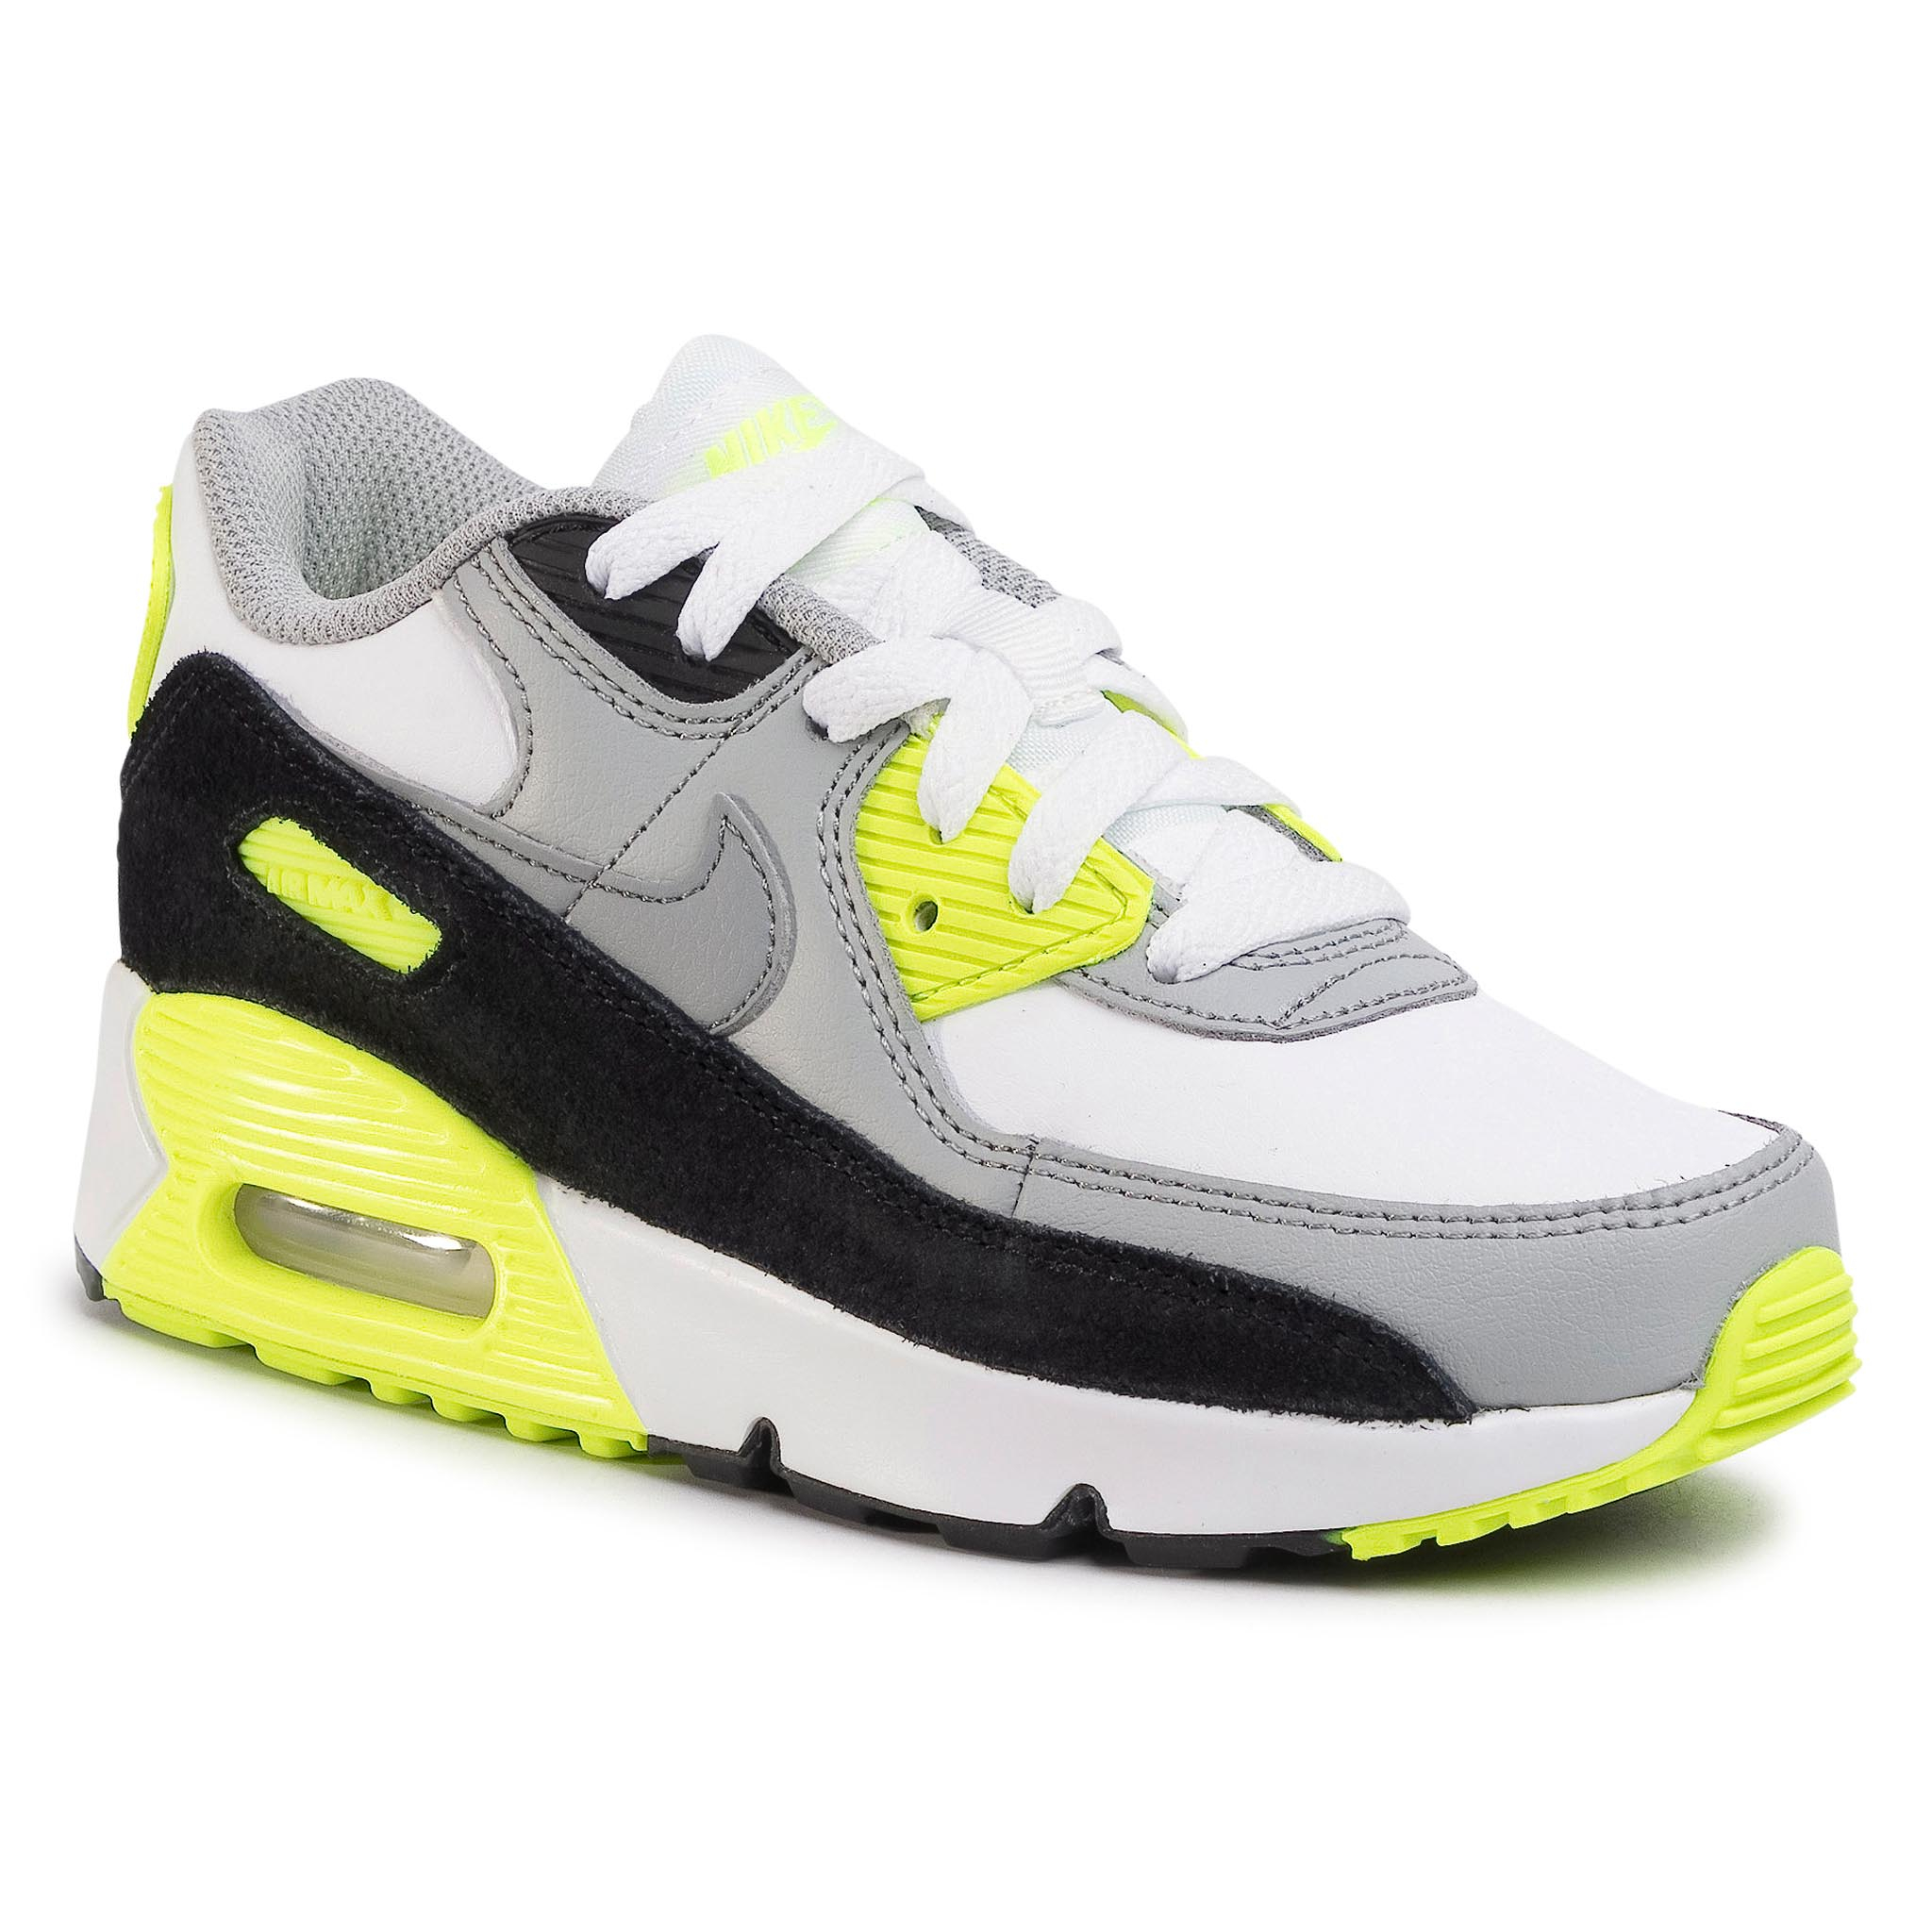 Topánky NIKE - Air Max 90 Ltr (Ps) CD6867 101 White/Particle Grey